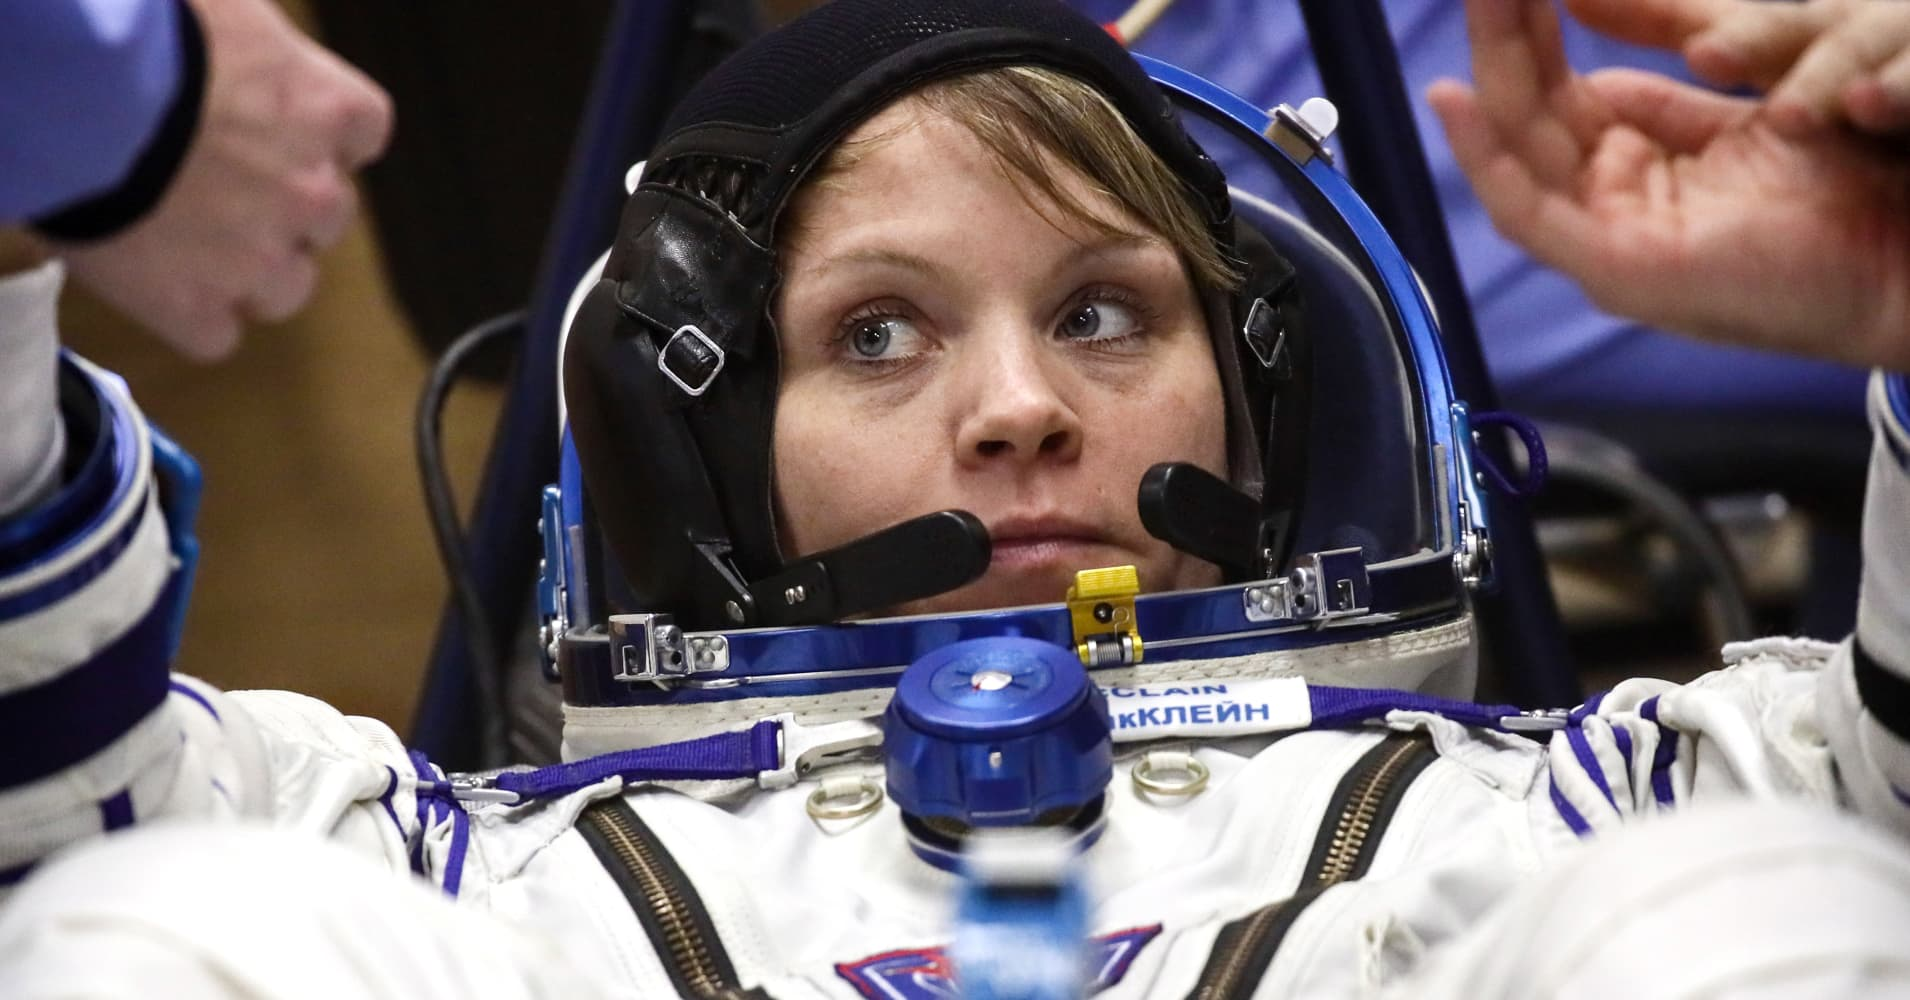 NASA cancels 1st all-female spacewalk due to 'spacesuit availability'